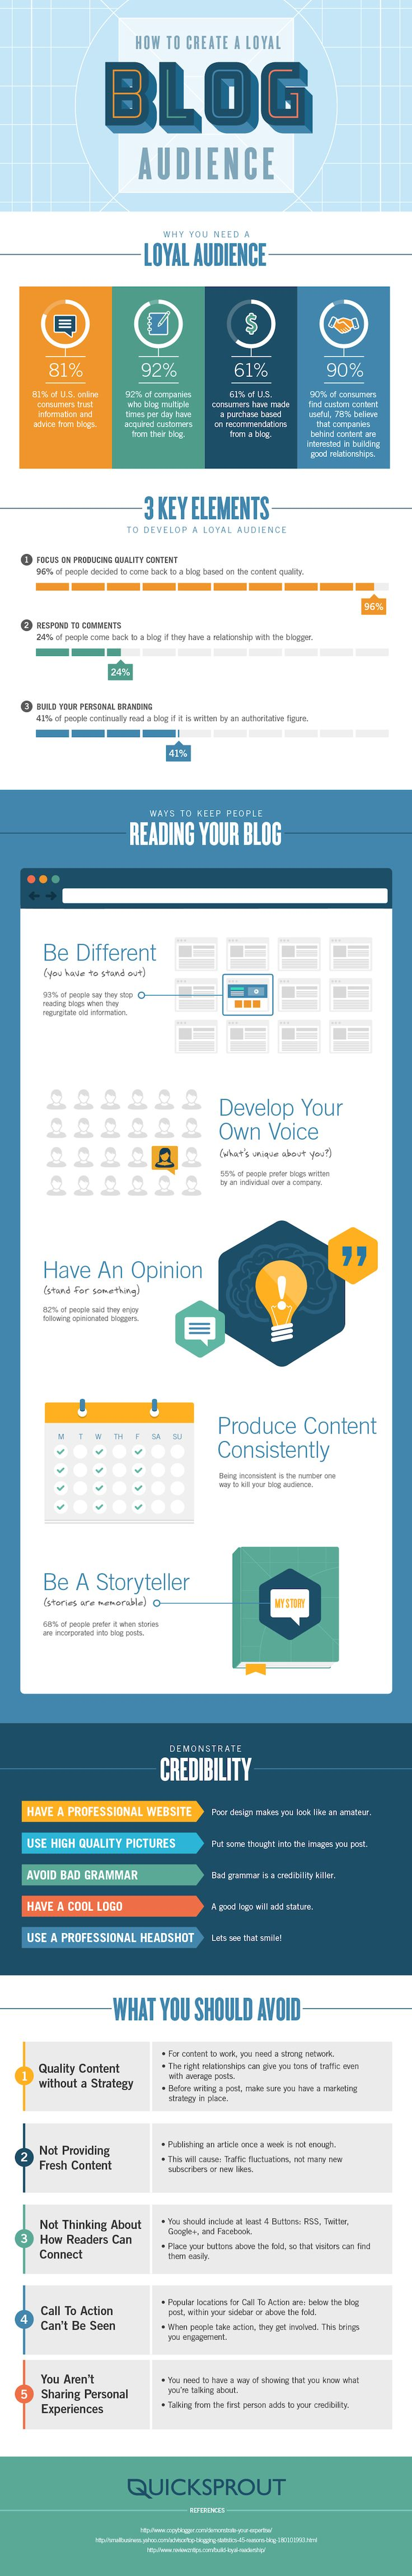 #Blog #Infographic: How to Create a Loyal #Blog Audience @neilpatel